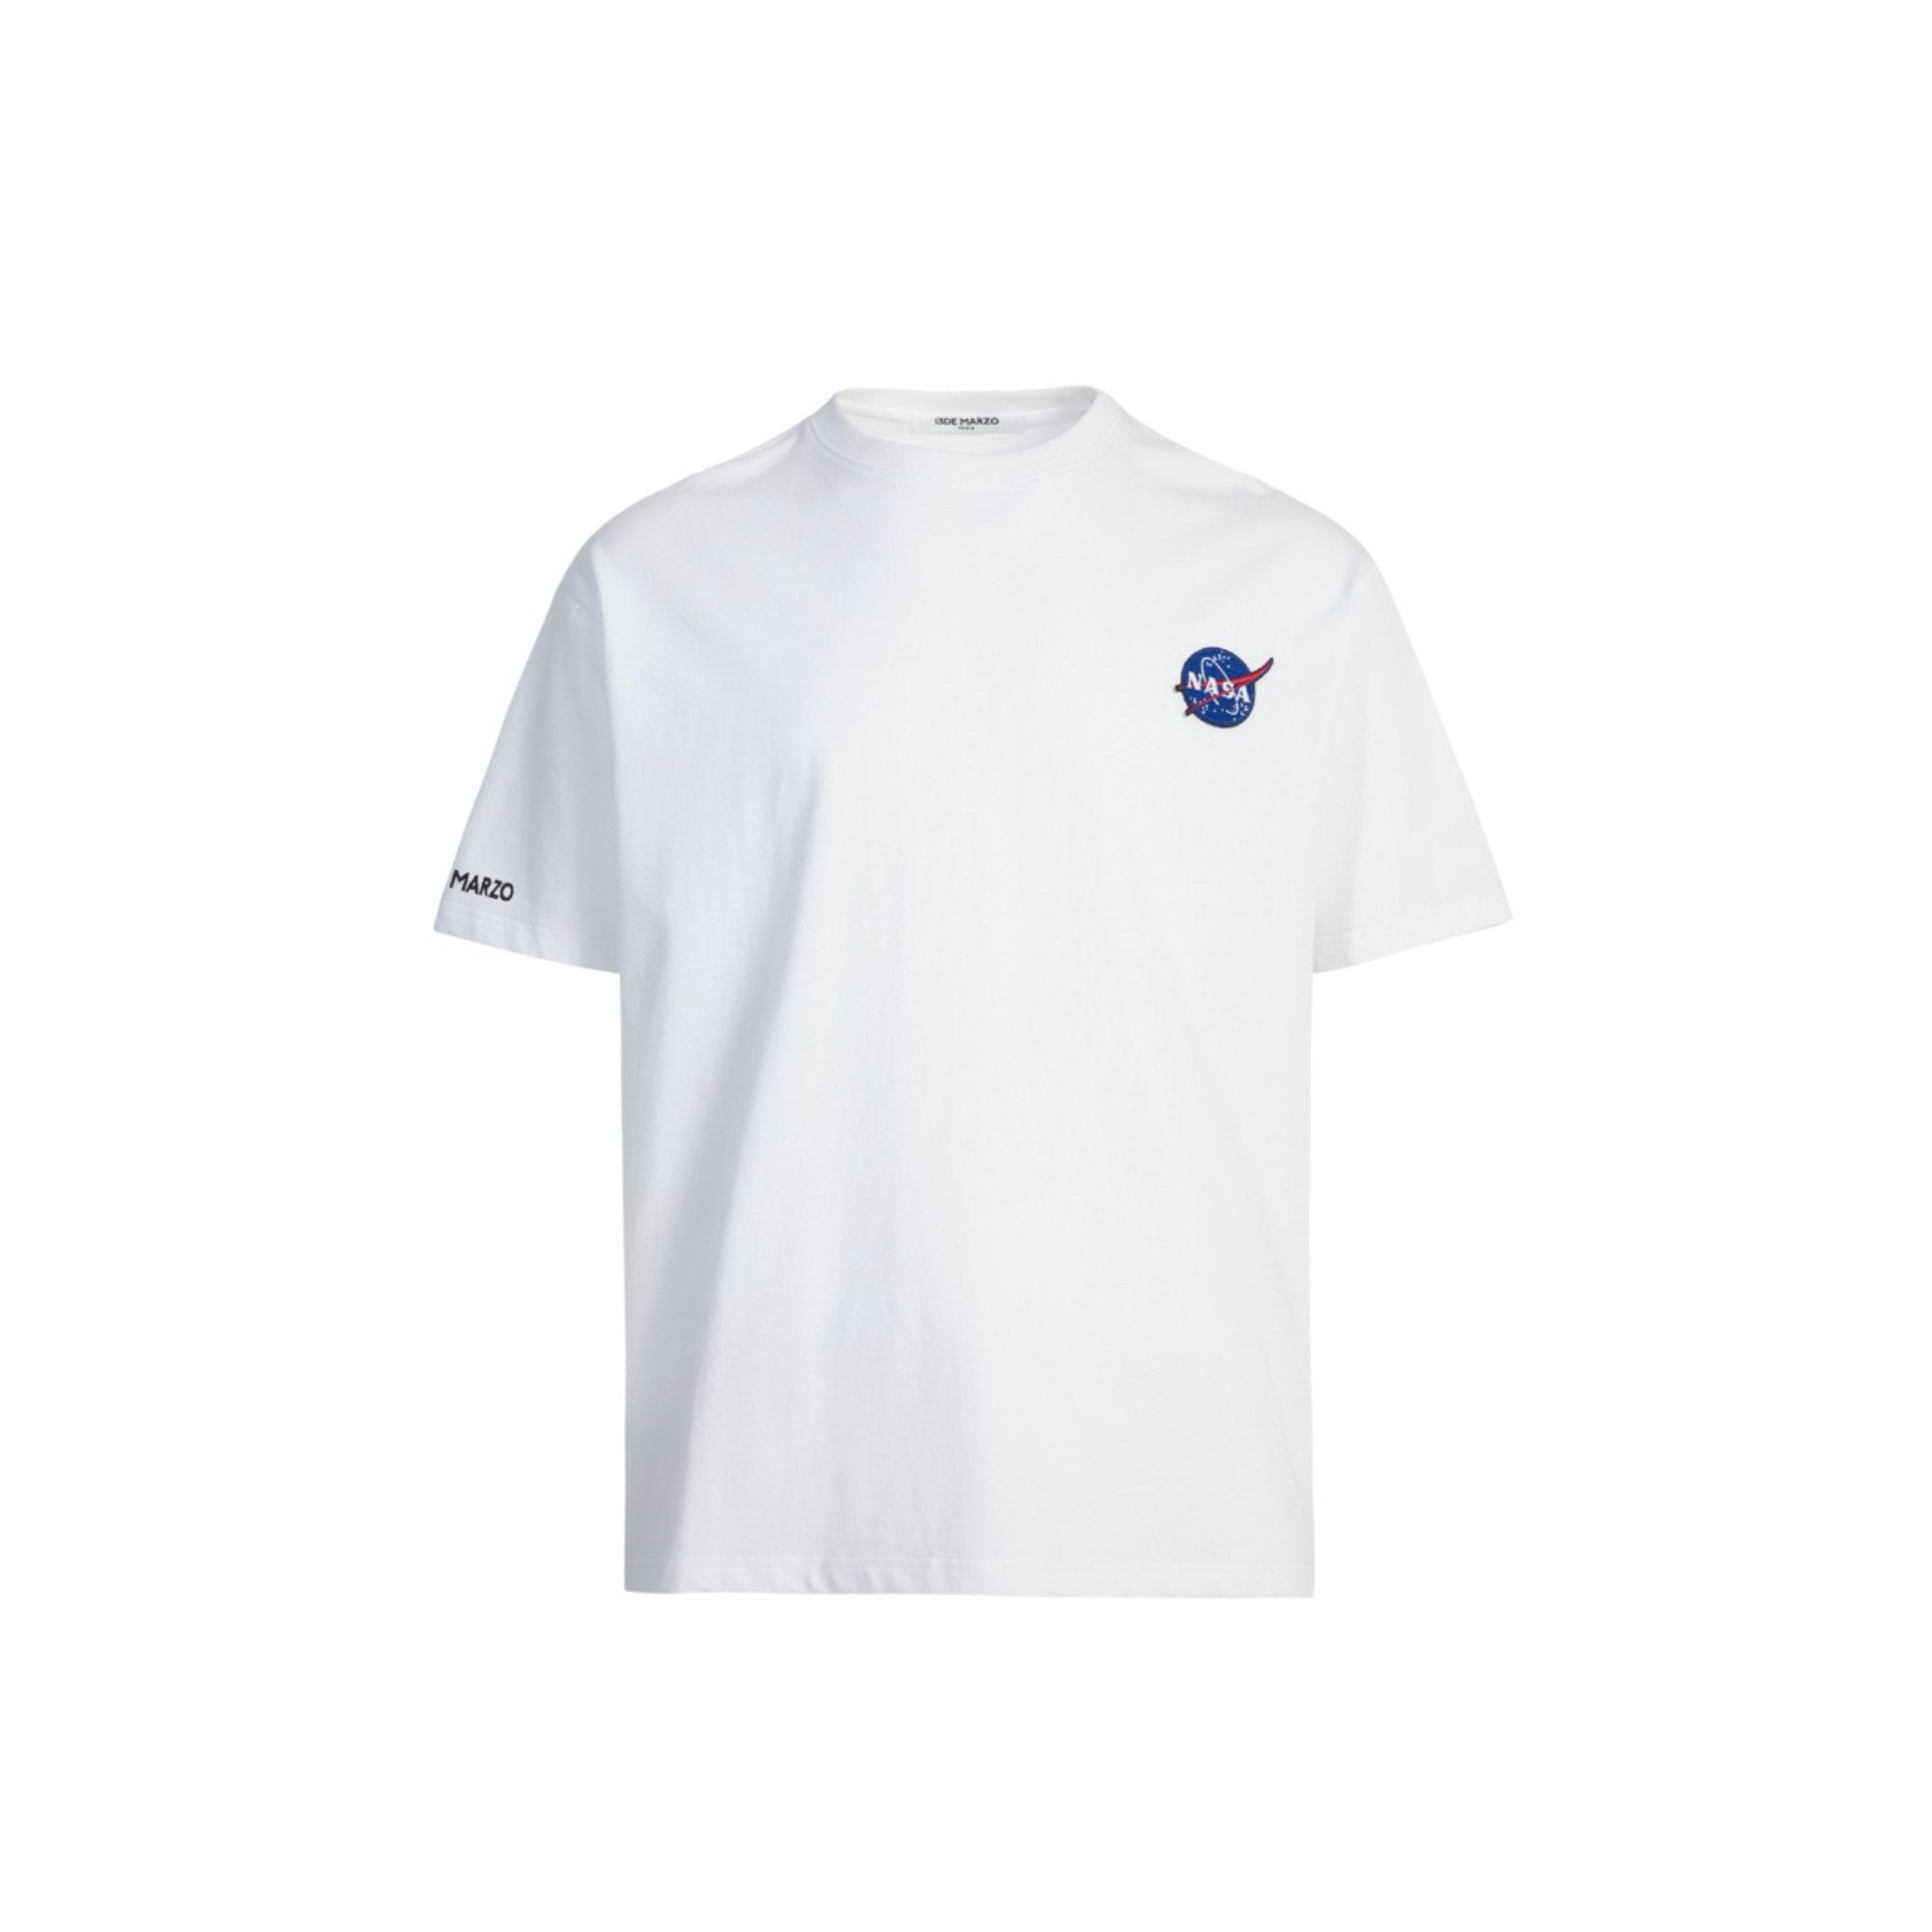 13 DE MARZO Astronaut Teddy Bear Tee White | MADA IN CHINA